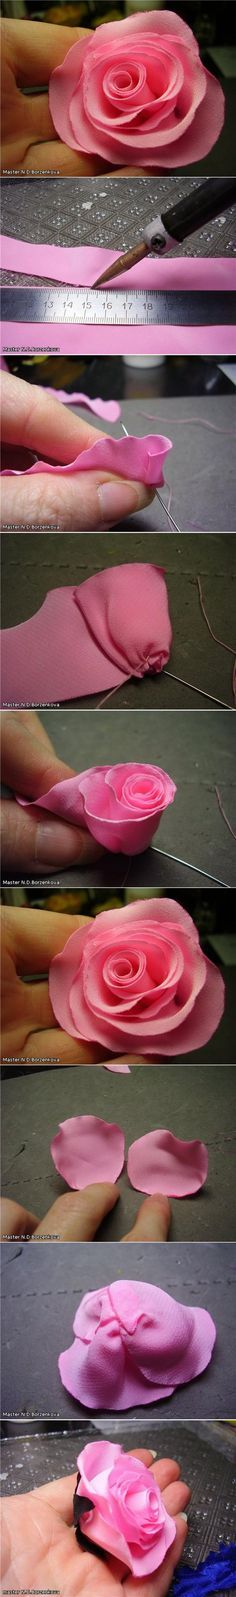 You will love making this rose from fabric that you have. You will...